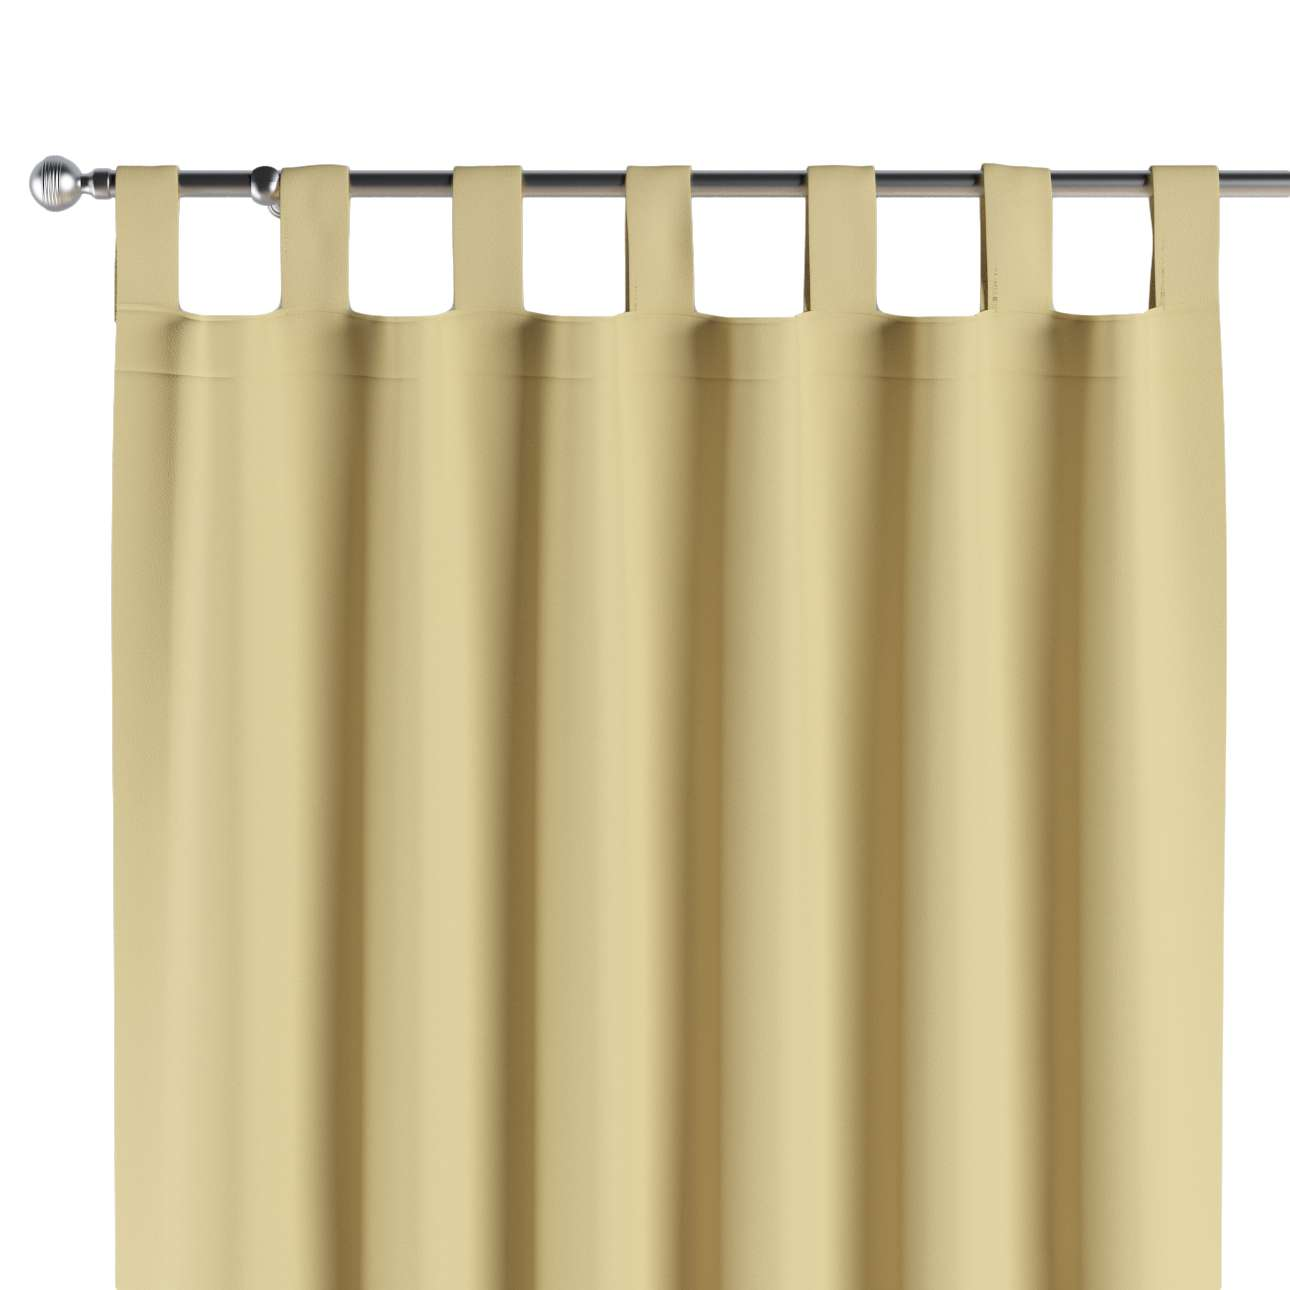 henry koo tab blinds curtains top curtain